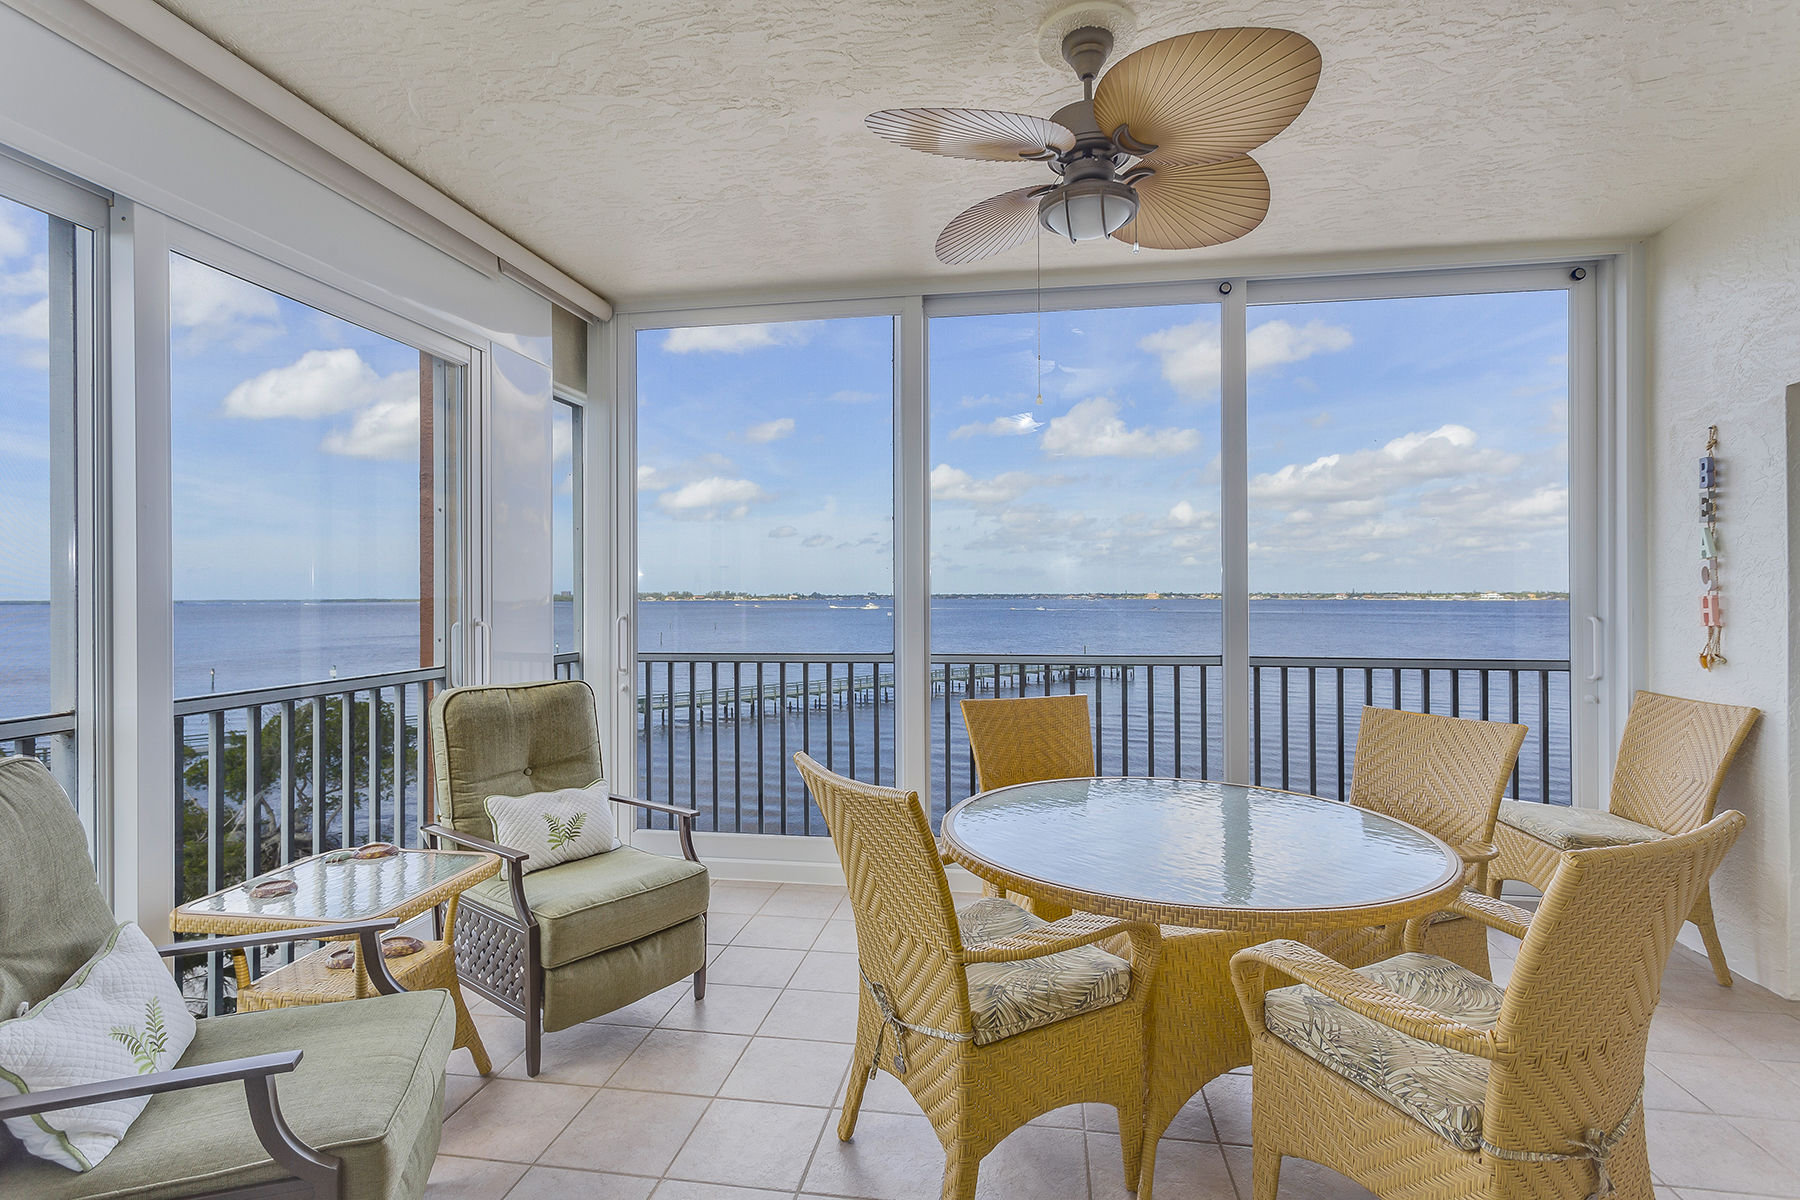 Condominium for Sale at 14811 Laguna Dr , 301, Fort Myers, FL 33908 14811 Laguna Dr 301, Fort Myers, Florida 33908 United States